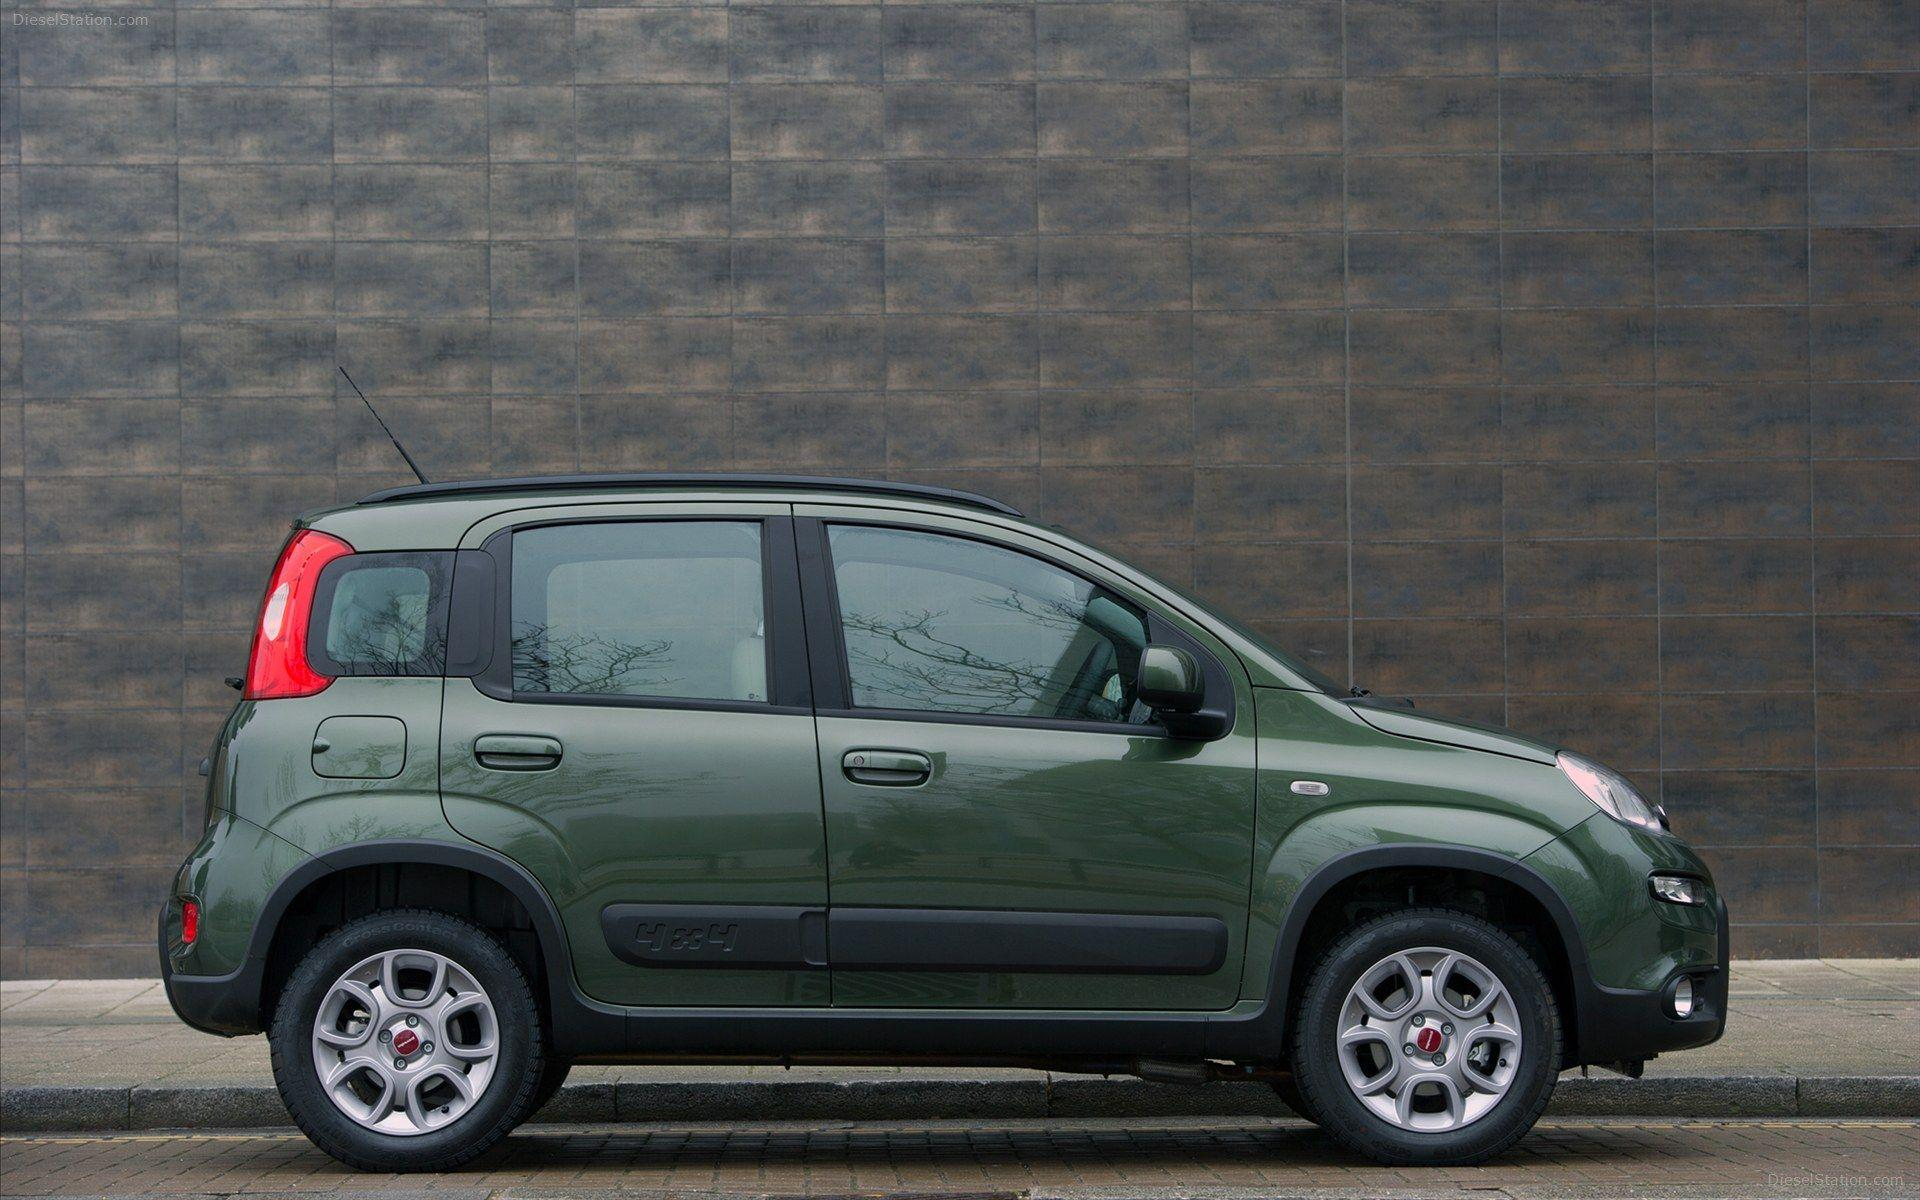 Fiat Panda 4X4 2013 Widescreen Exotic Car Pictures of 52